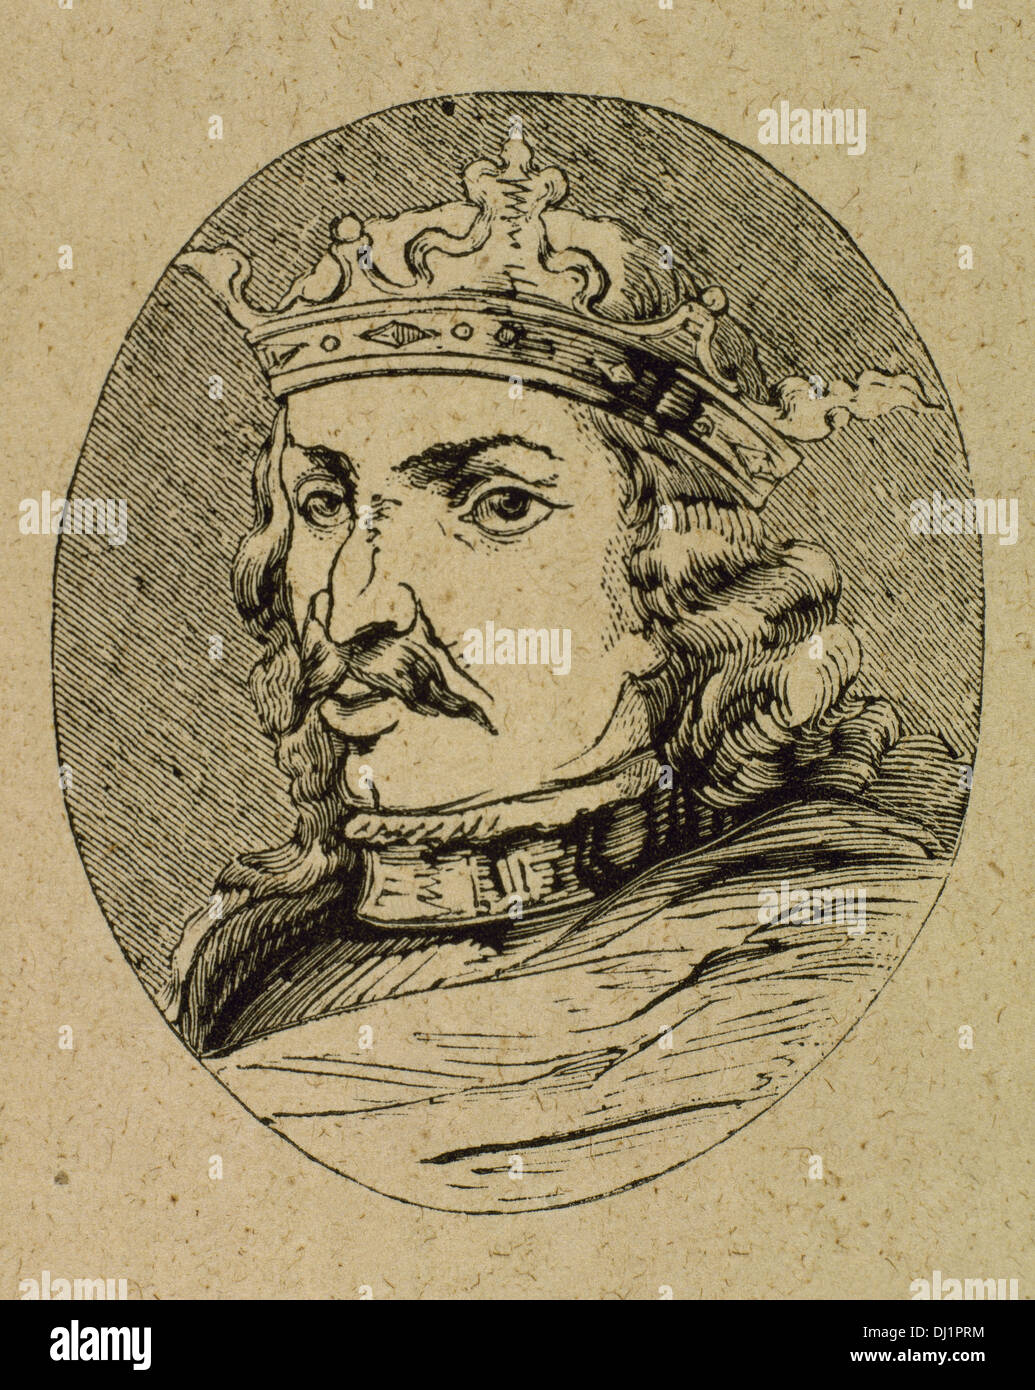 Henry IV of Castile (1425-1474). King of the Crown of Castile. Nicknamed The Impotent. Engraving. - Stock Image